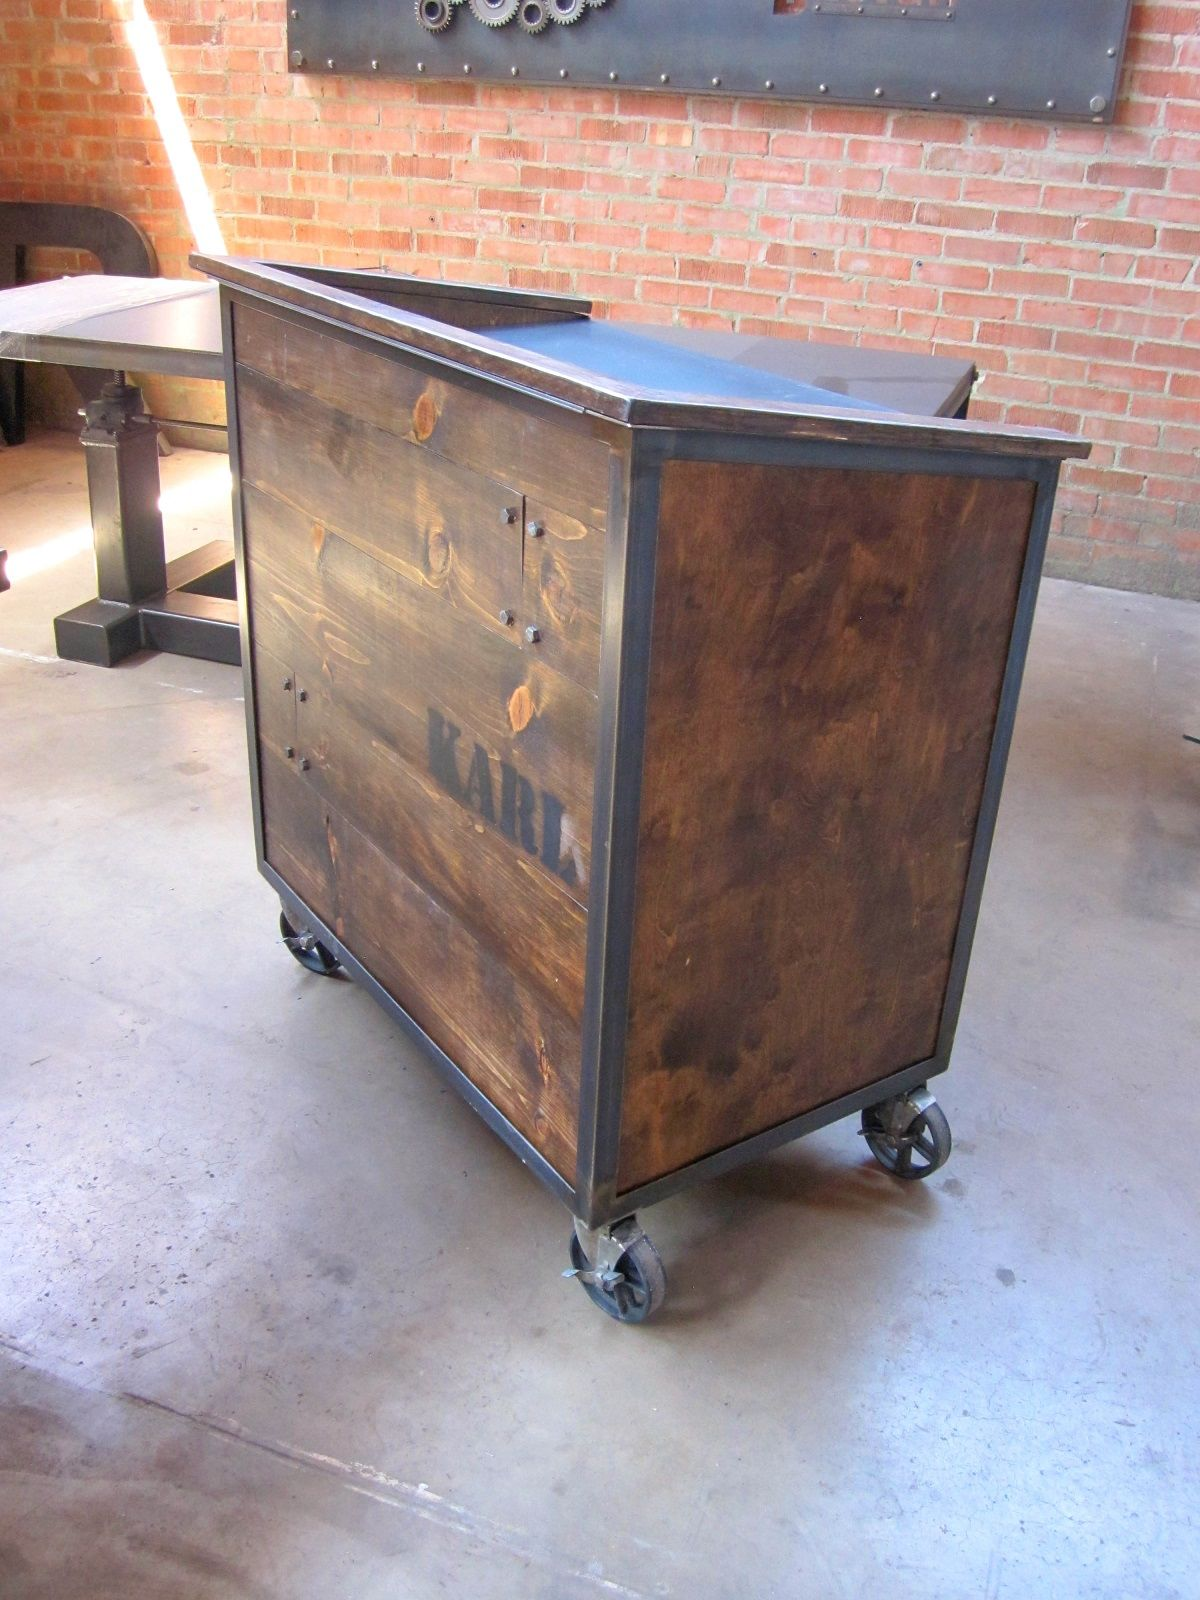 Factory caster vintage industrial furniture - Karl Hostess Stand With Dark Stain Pine Sides And Stenciled Back Locking Casters And Drawer Cubbies Model For More Info Visit The Hostess Stand Product